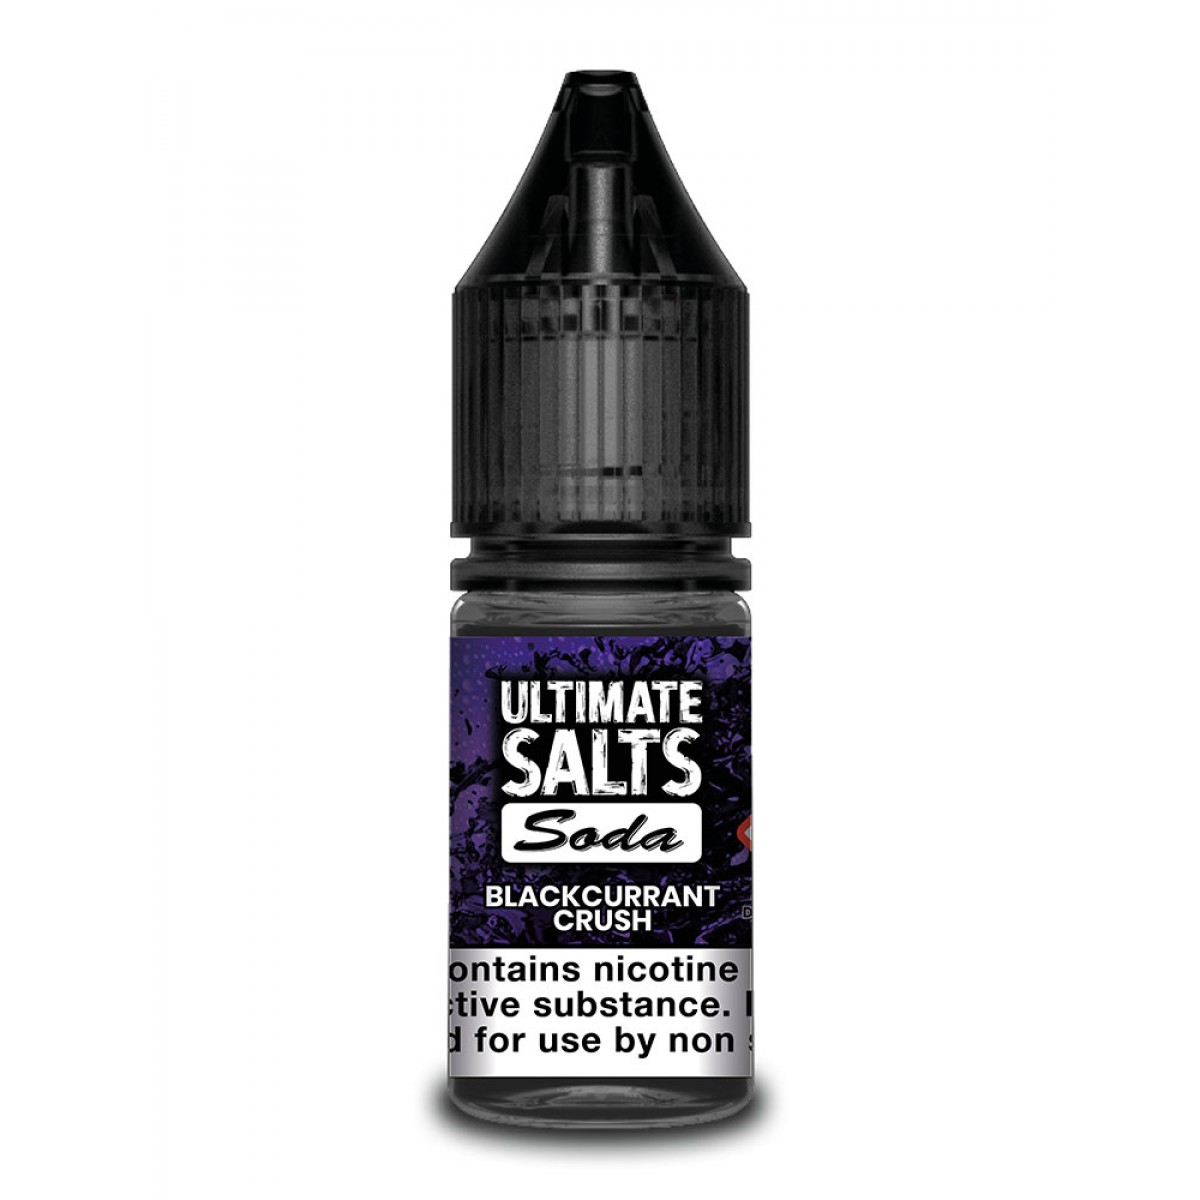 BLACKCURRANT CRUSH BY ULTIMATE SALTS SODA